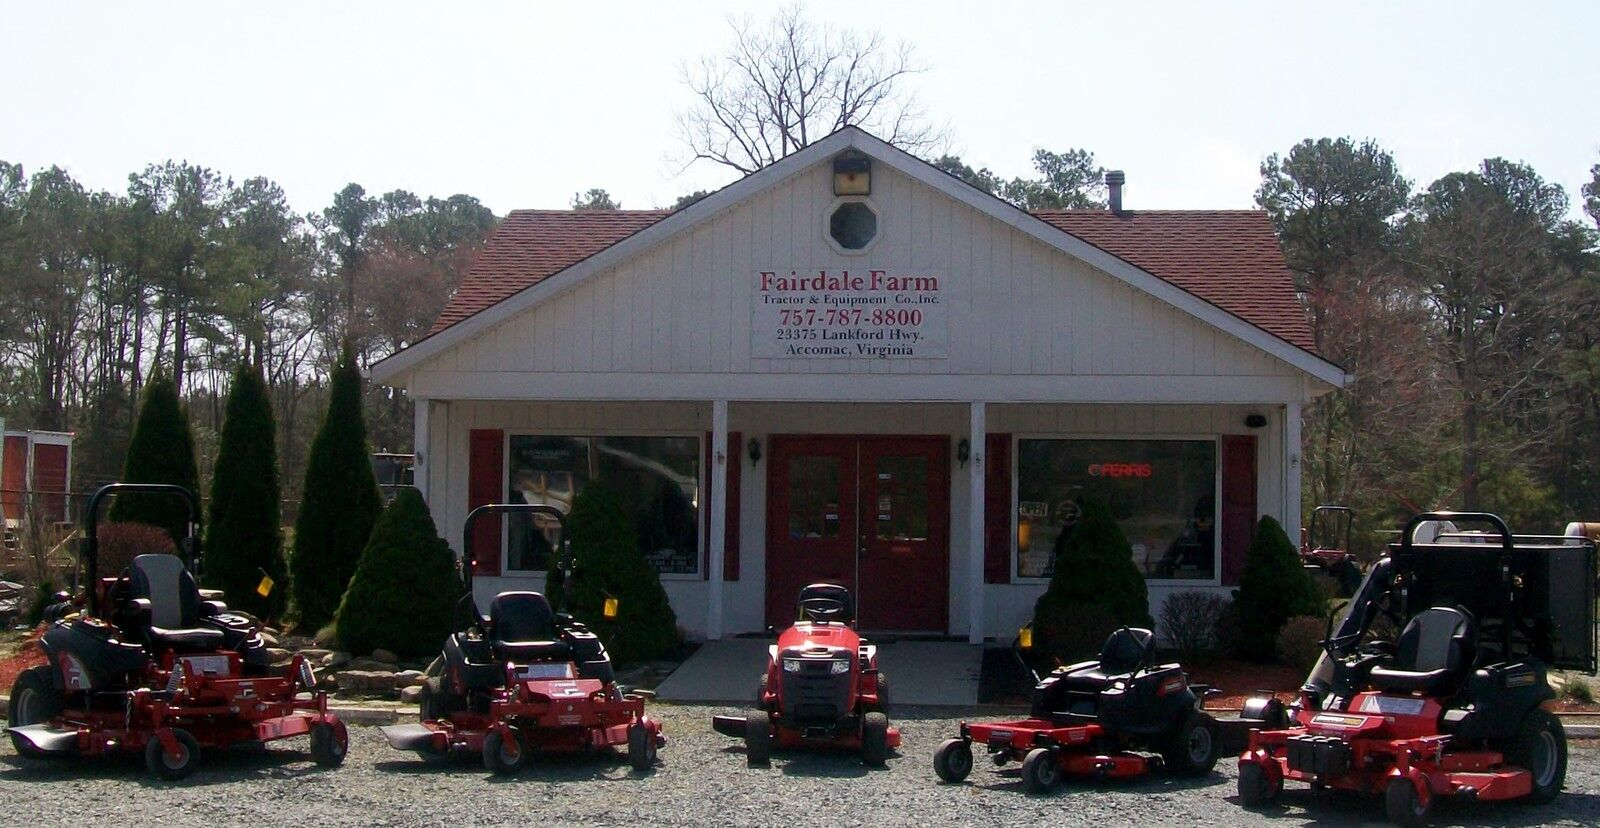 Fairdale Farm Tractor Equipment Co